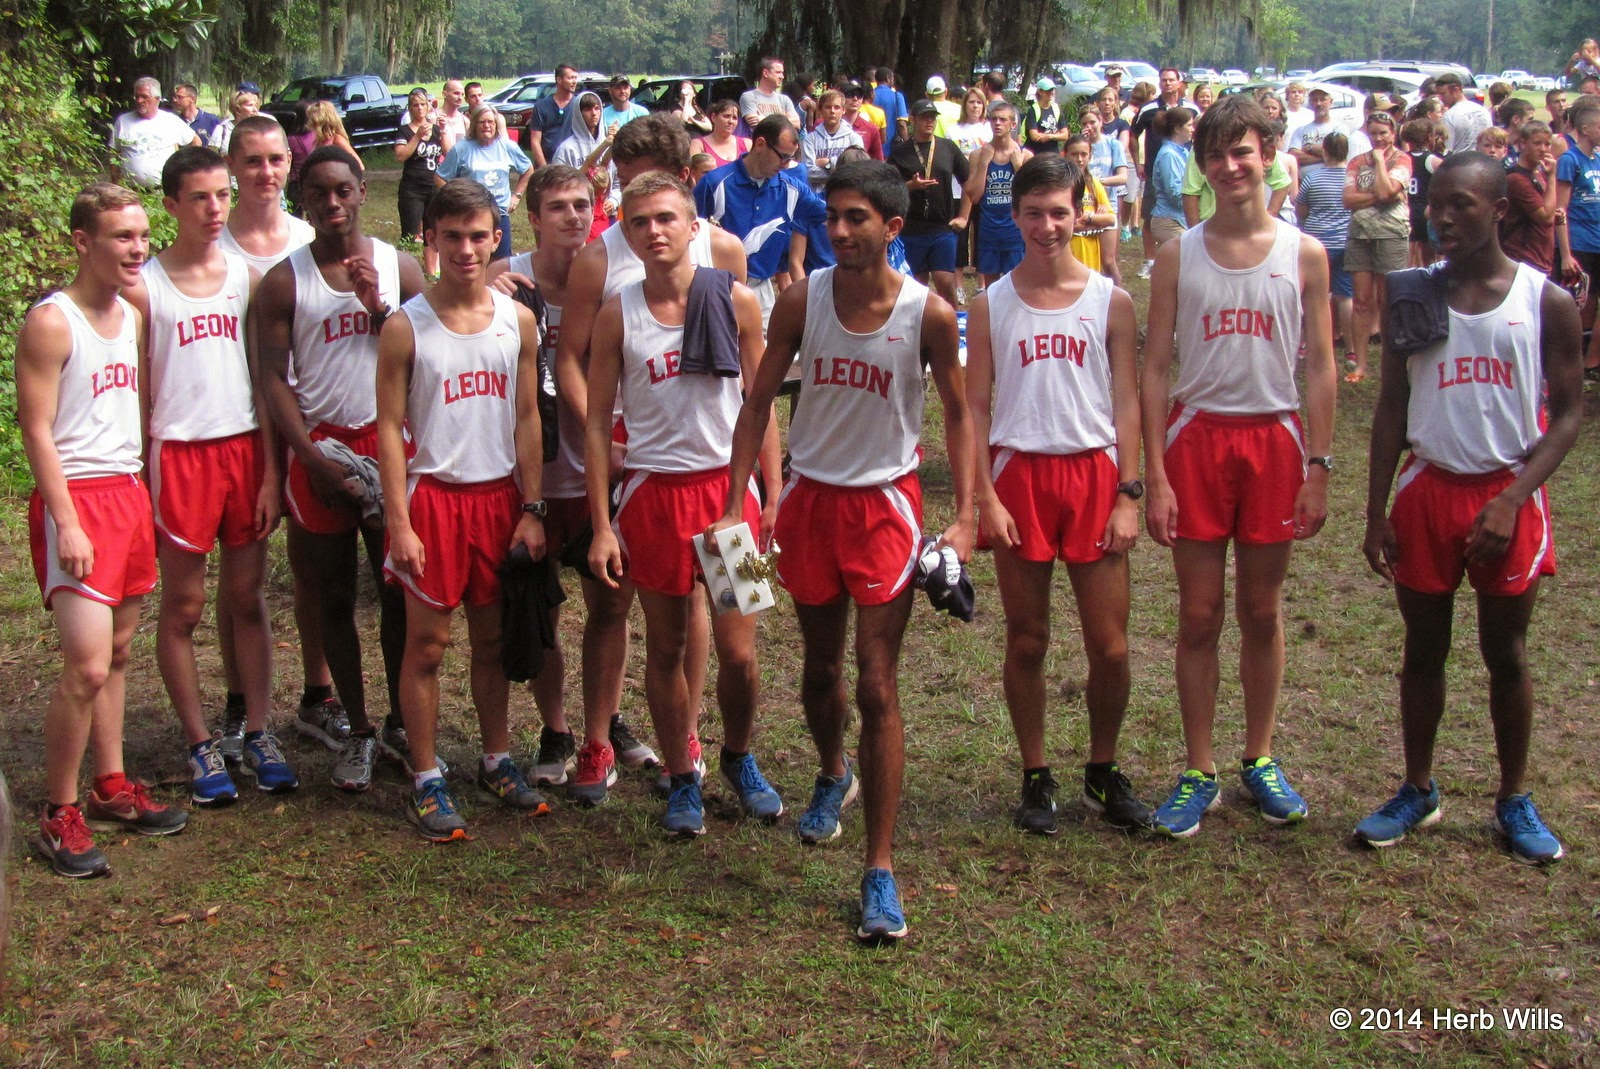 Leon HS boy's cross-country team